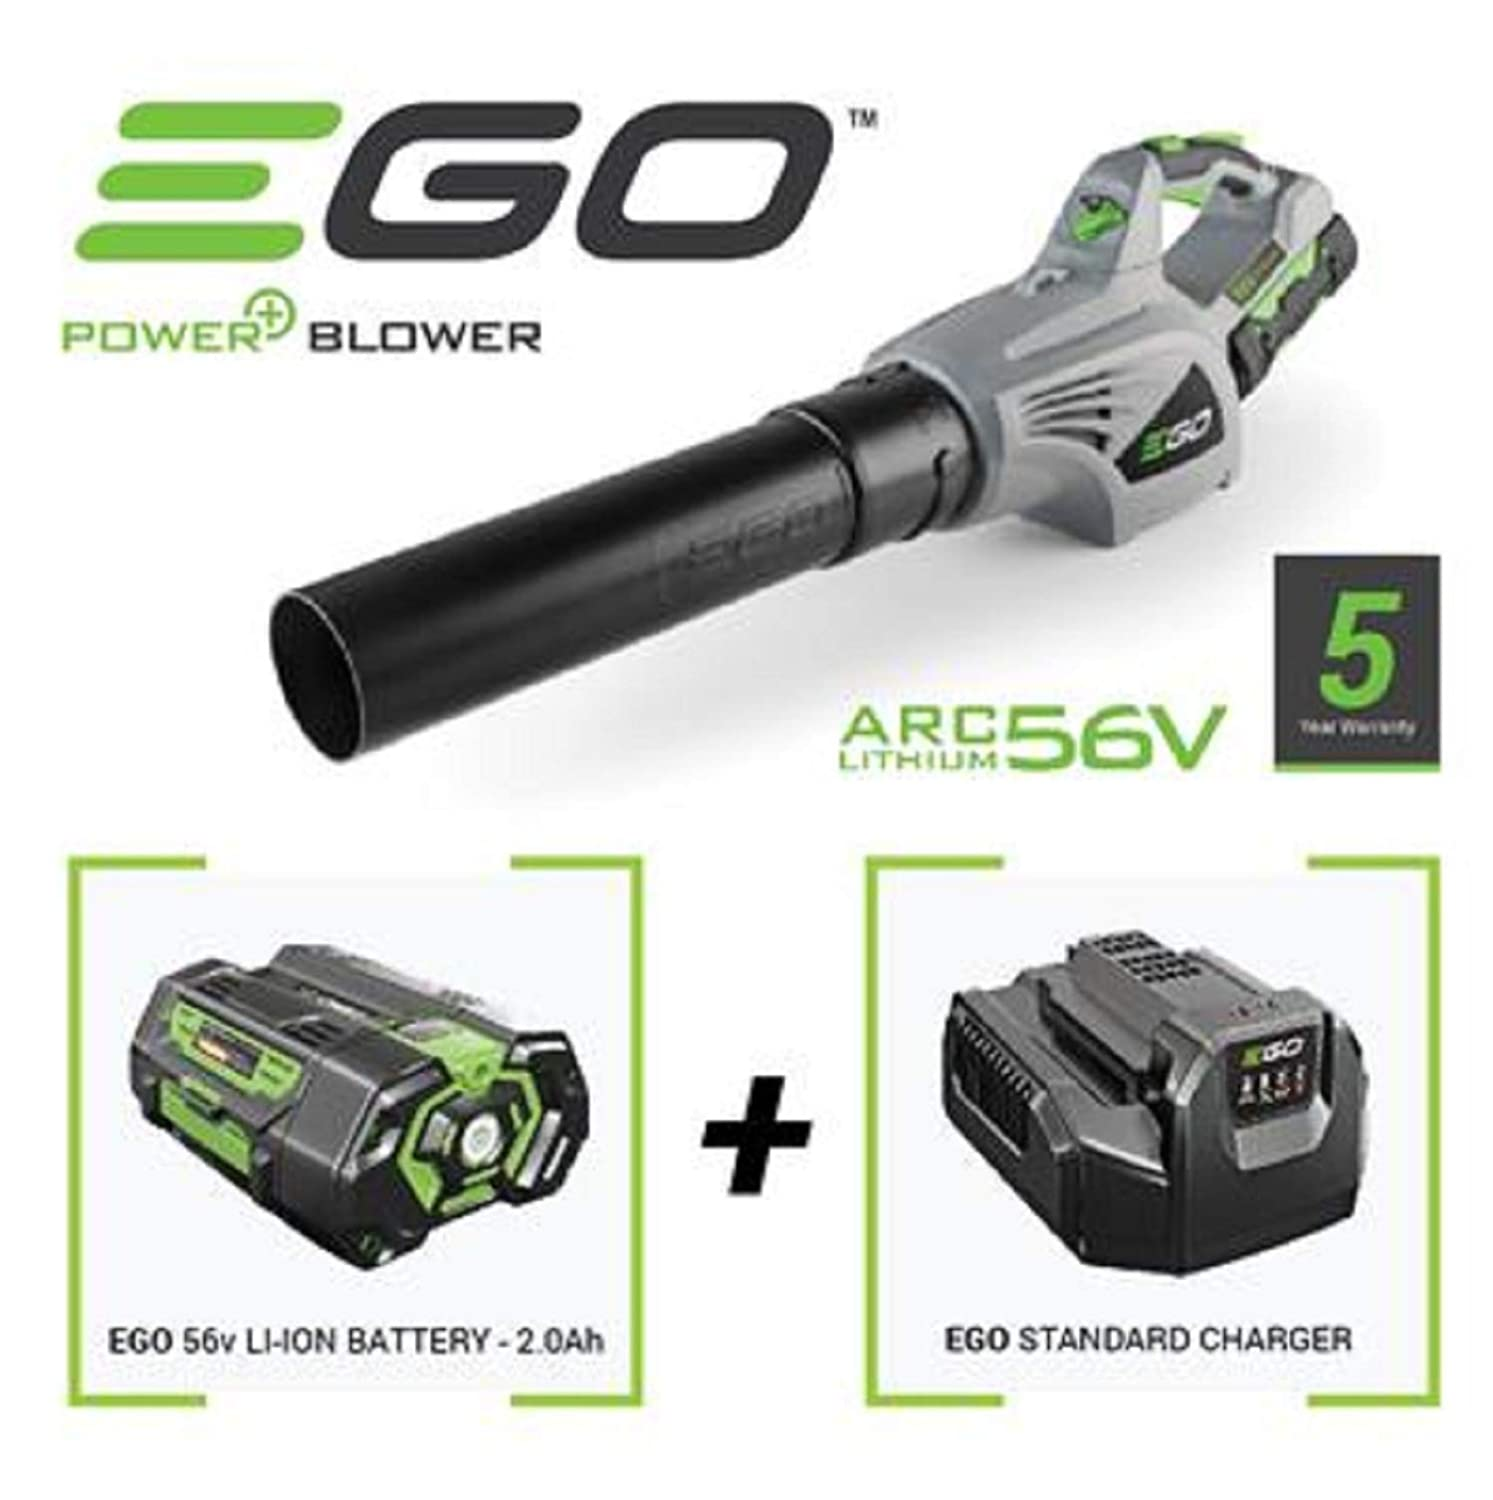 EGO 56V POWERFUL LEAF BLOWER WITH 2.0AH BATTERY & CHARGER 5 YEAR WARRANTY EGO TOOLS